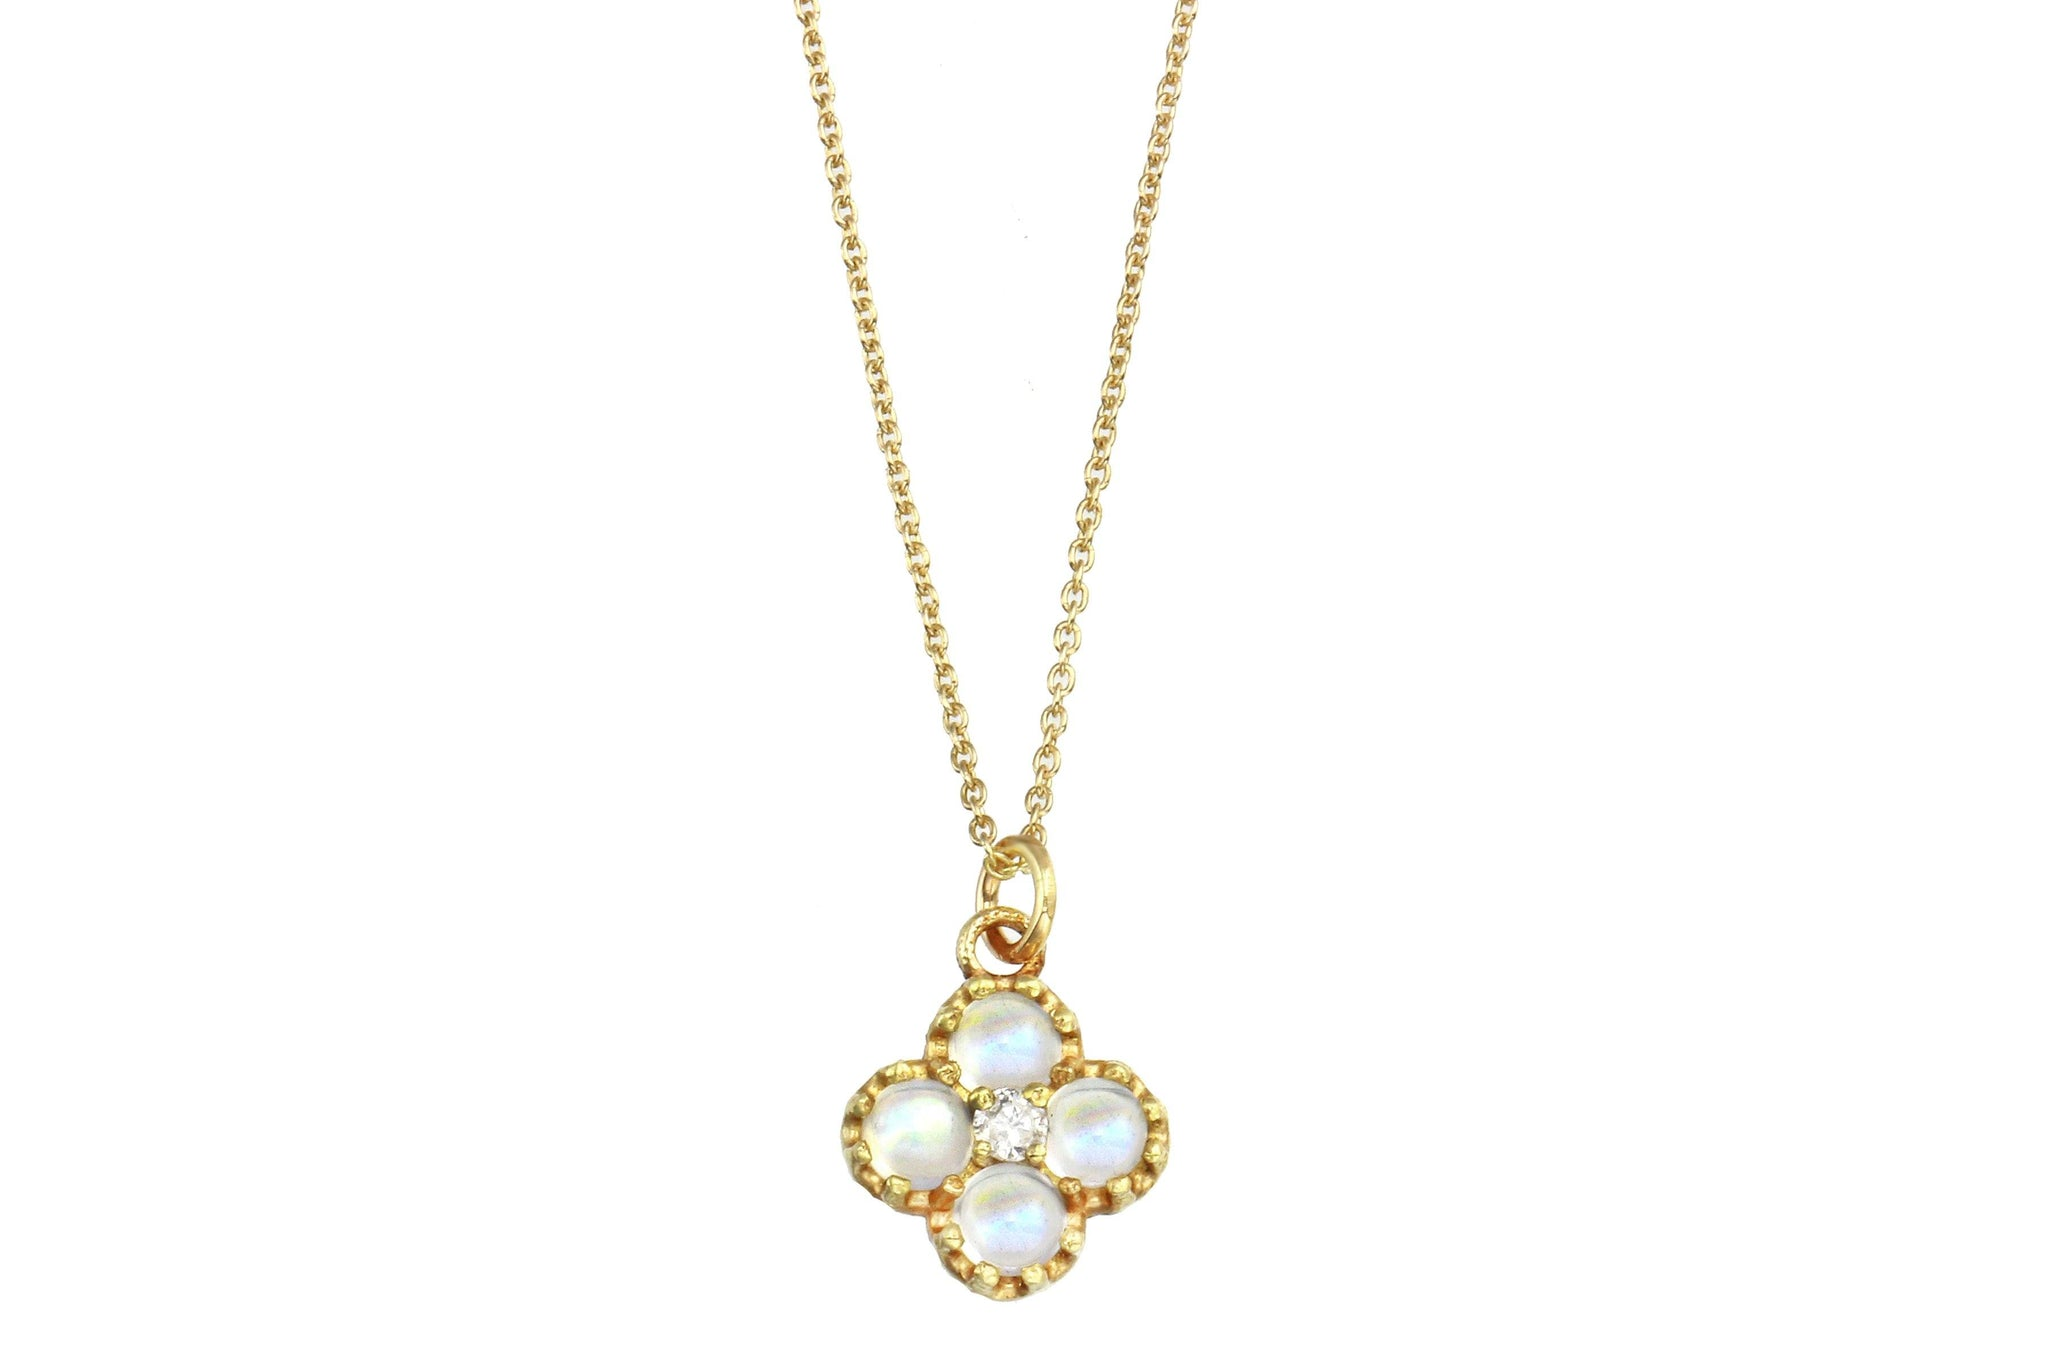 14k yellow gold and rainbow moonstone necklace